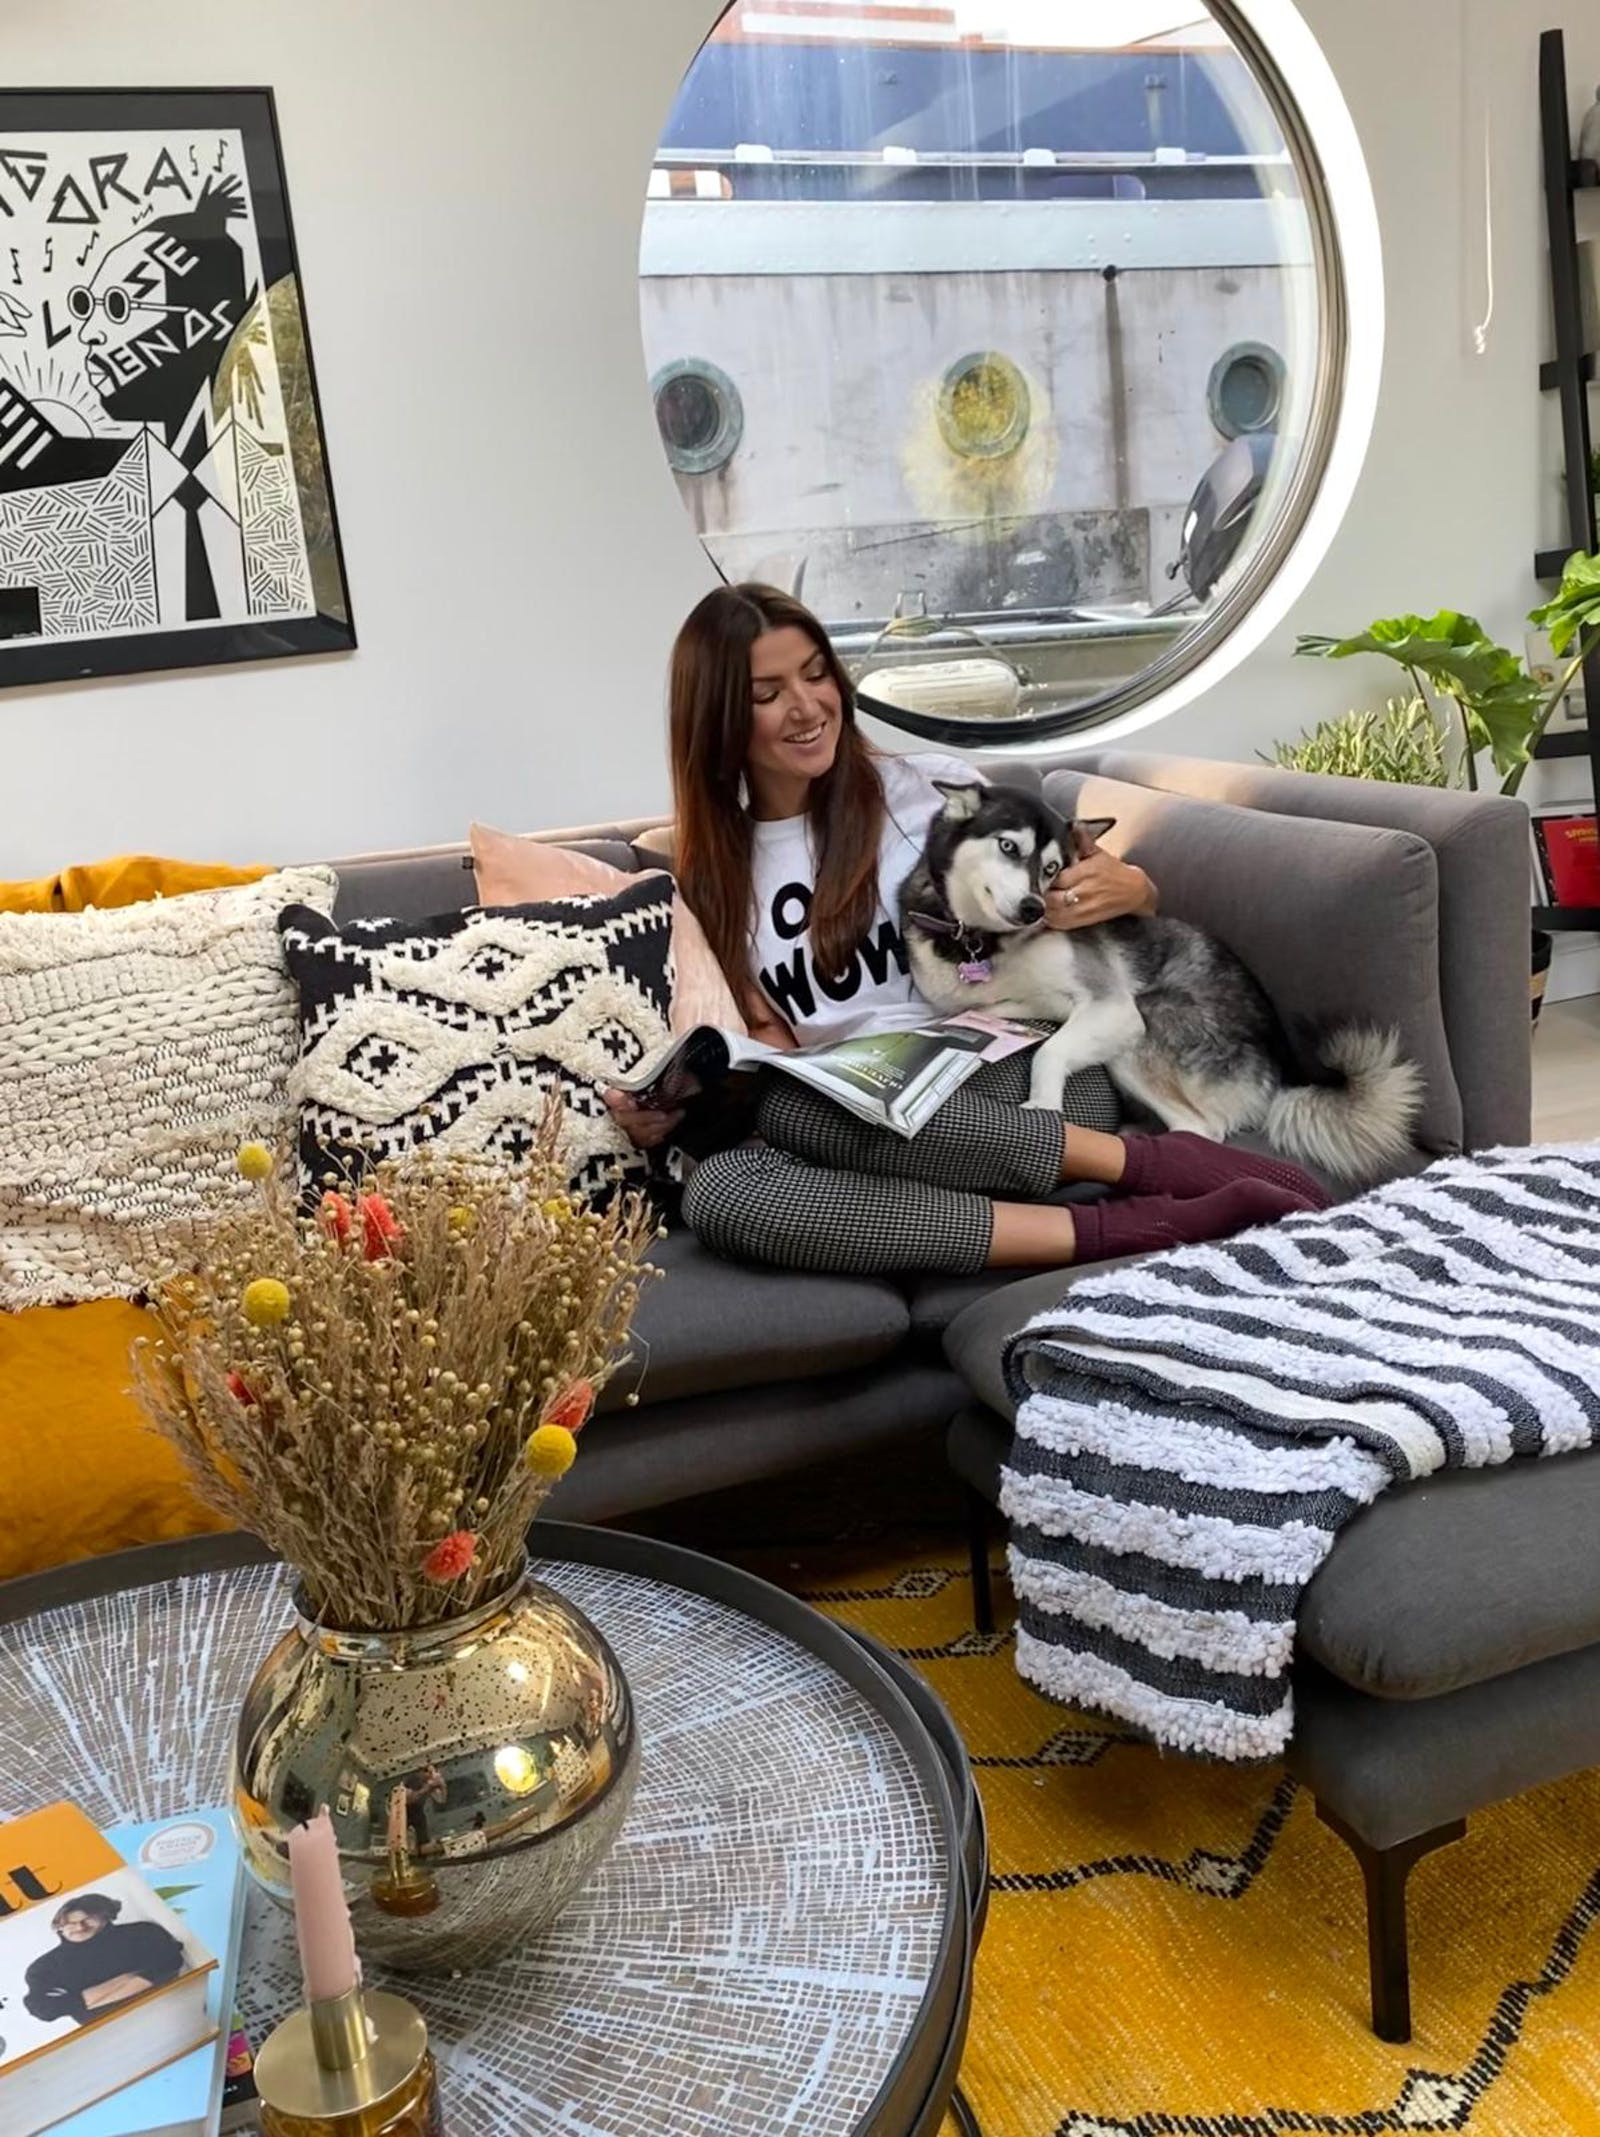 Christina Miles from @thisonefloats with her dog sitting in an eclectic living room